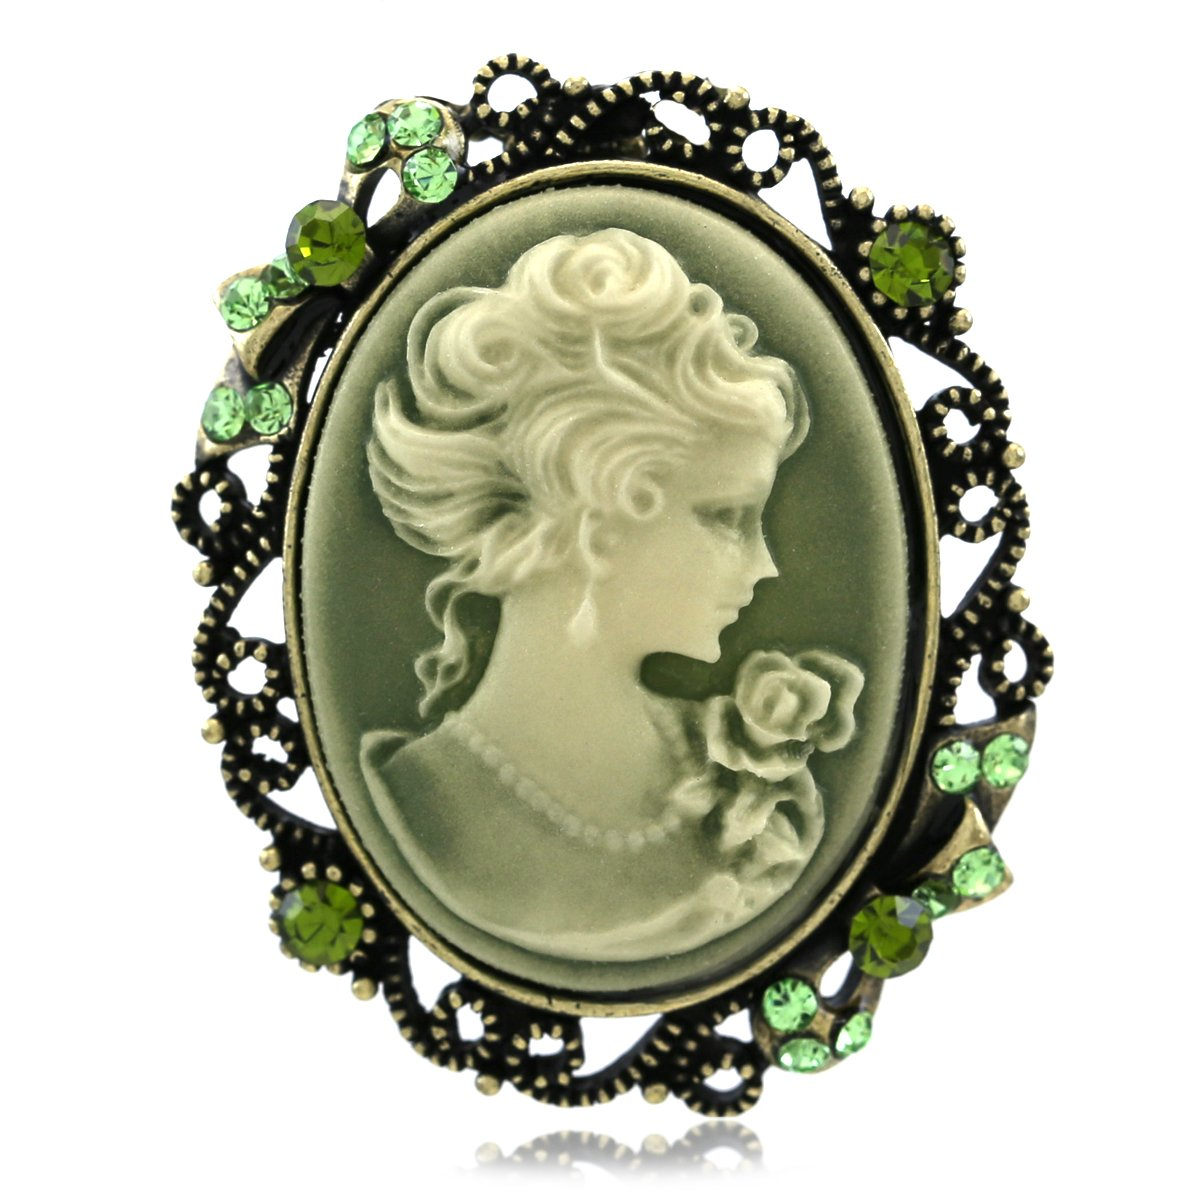 Soulbreezecollection Green Cameo Brooch Pin Charm for Women Necklace Pendant Compatible